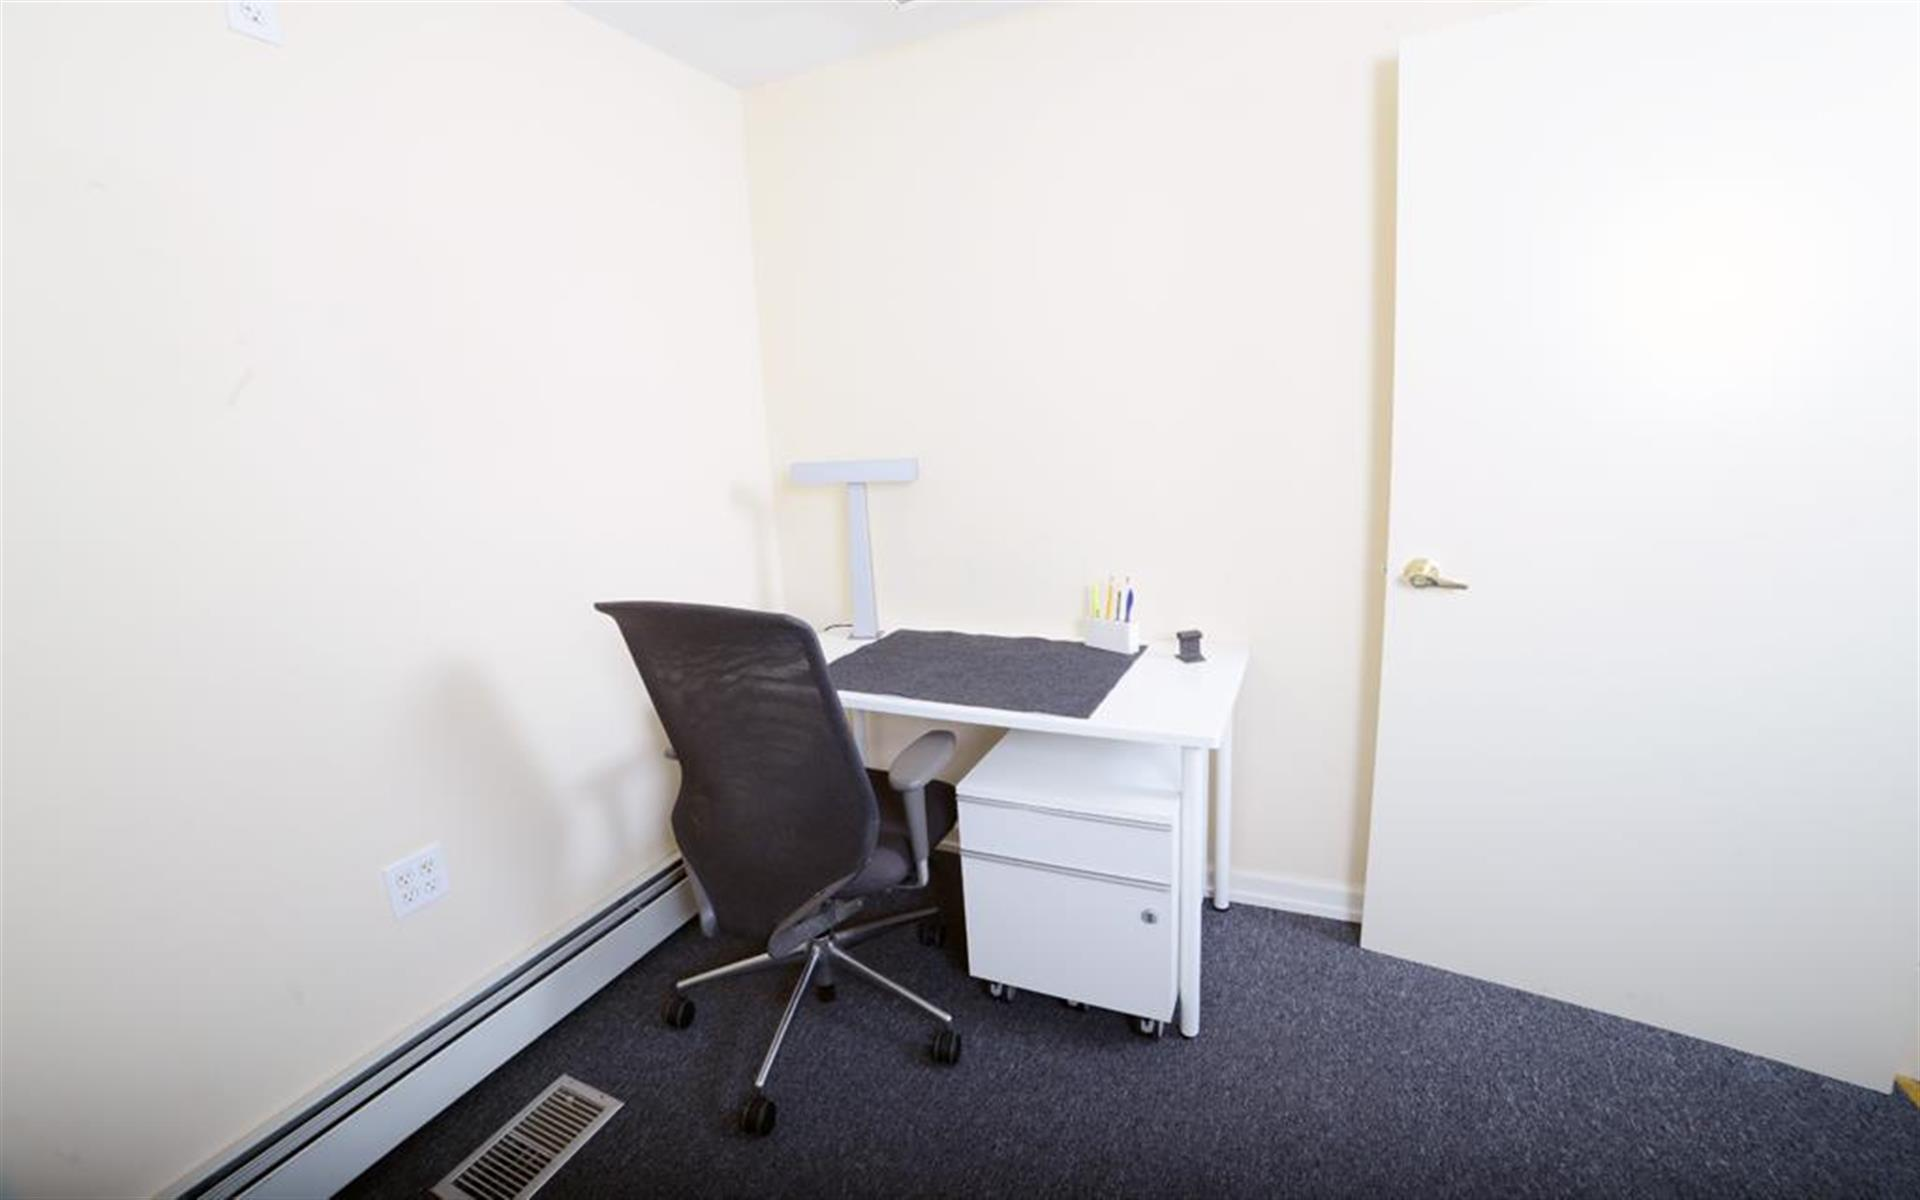 Space 69 - G3 - 4 person office